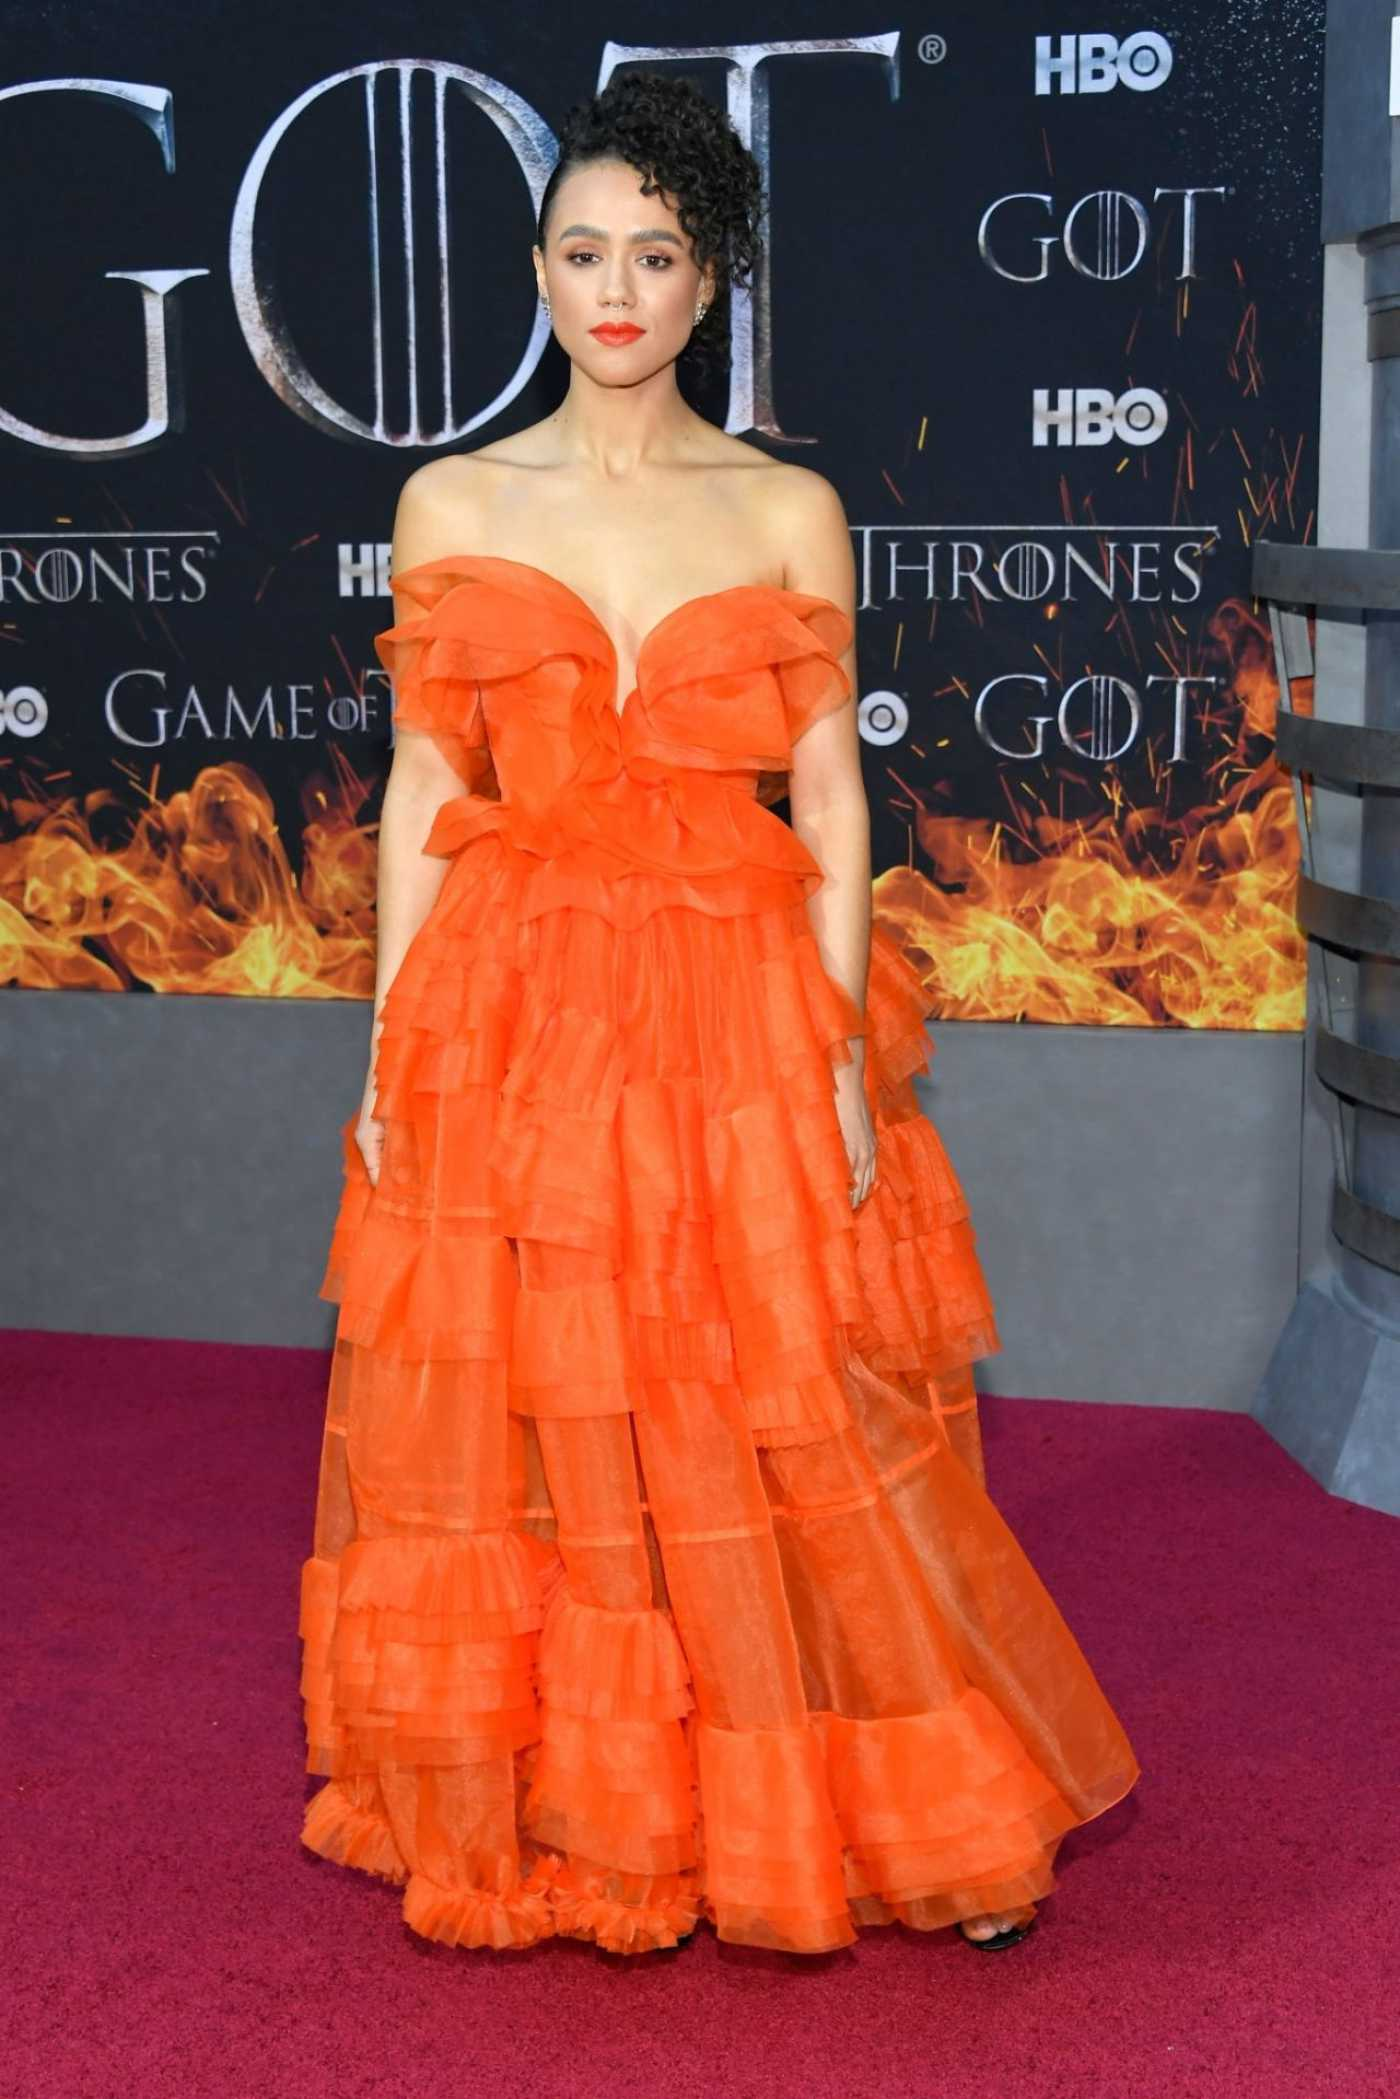 Nathalie Emmanuel Attends the Game of Thrones Season 8 Premiere in New York 04/03/2019